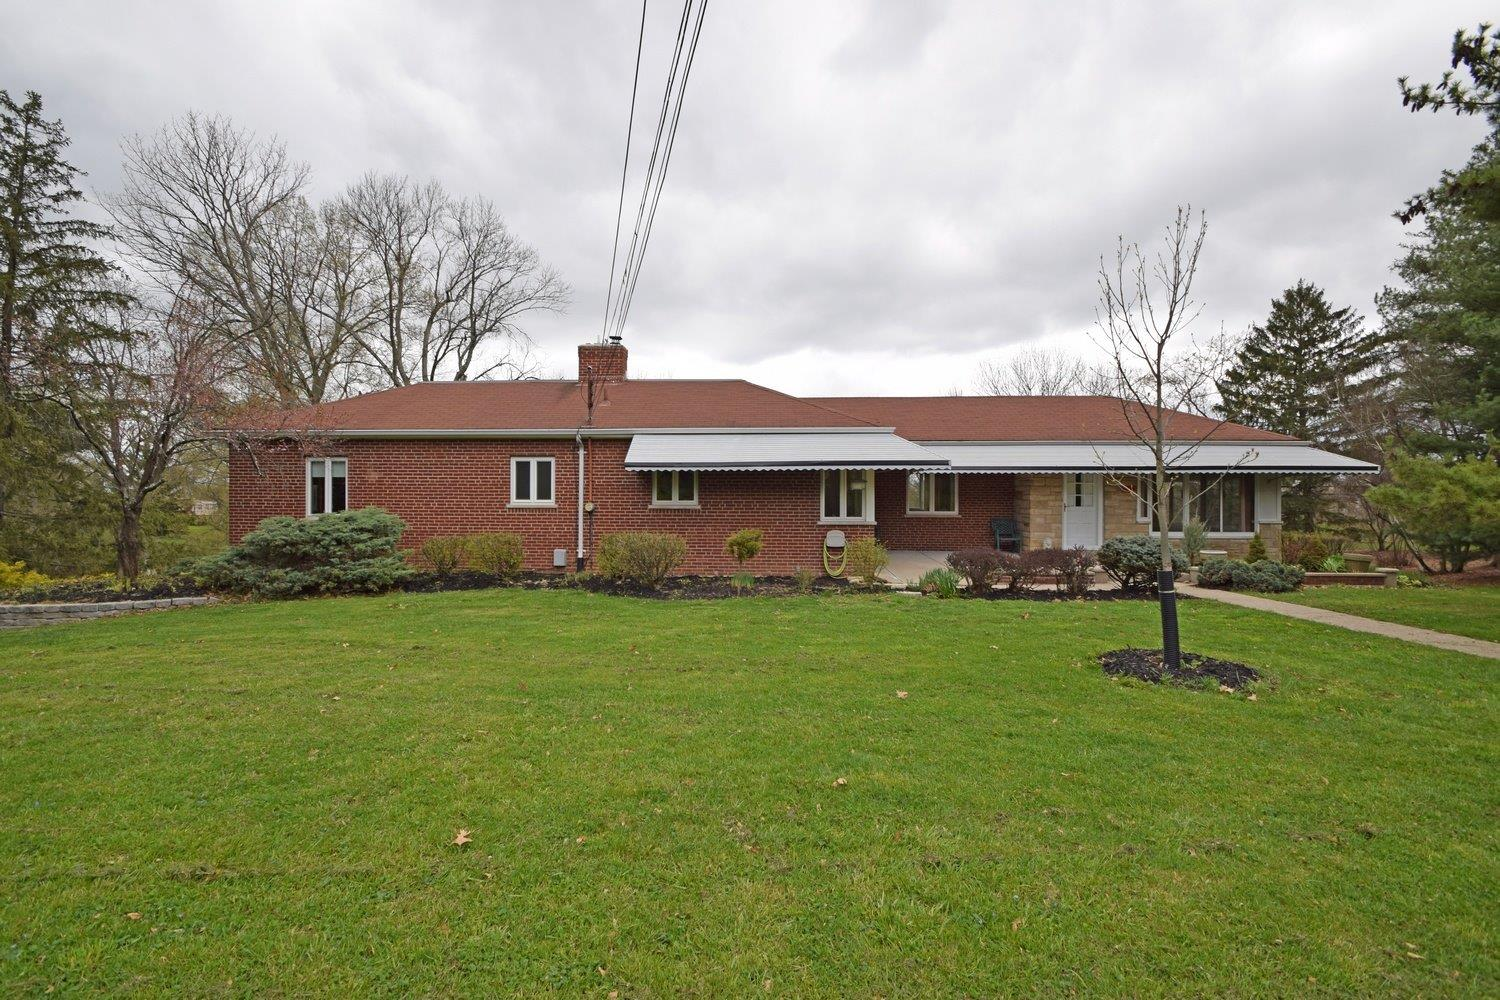 Brick ranch on private lane with park-like setting,.80 acres, pond and wood views, 1 floor living, 1533 SF (county) plus full LL with walk-out, hardwood thru-out,3 season room with grand views, privacy an oasis right near St. X,beautiful setting in the middle of it all,Hdws just refinished.